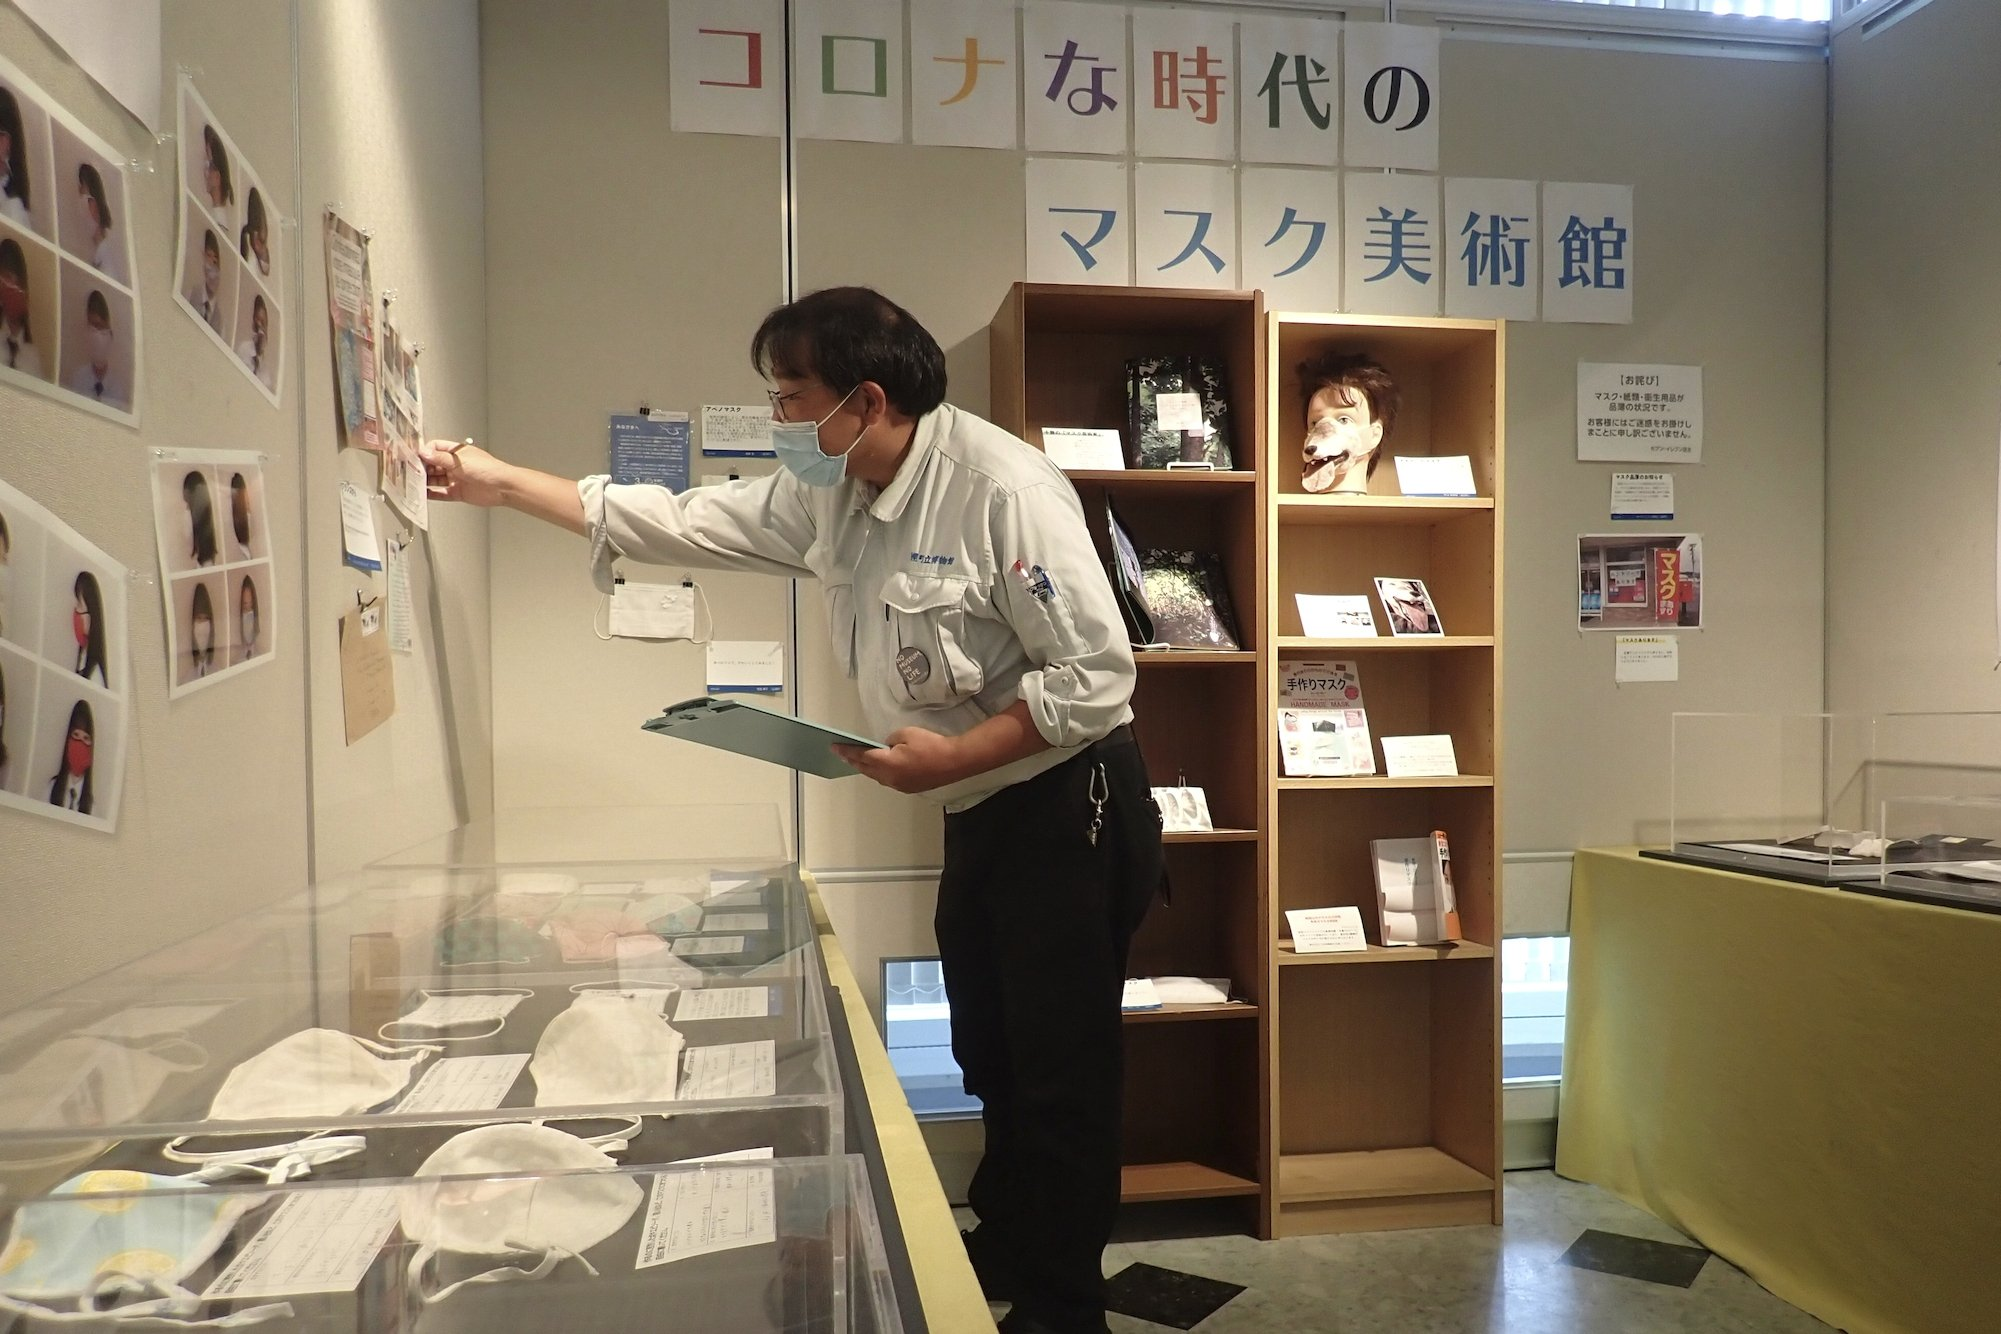 Curator Makoto Mochida examines newspaper clips and other items he has collected to document how life was affected by the coronavirus pandemic, at the Historical Museum of Urahoro in Urahoro, Hokkaido island, northern Japan, Aug. 16, 2020. (AP PHOTO)